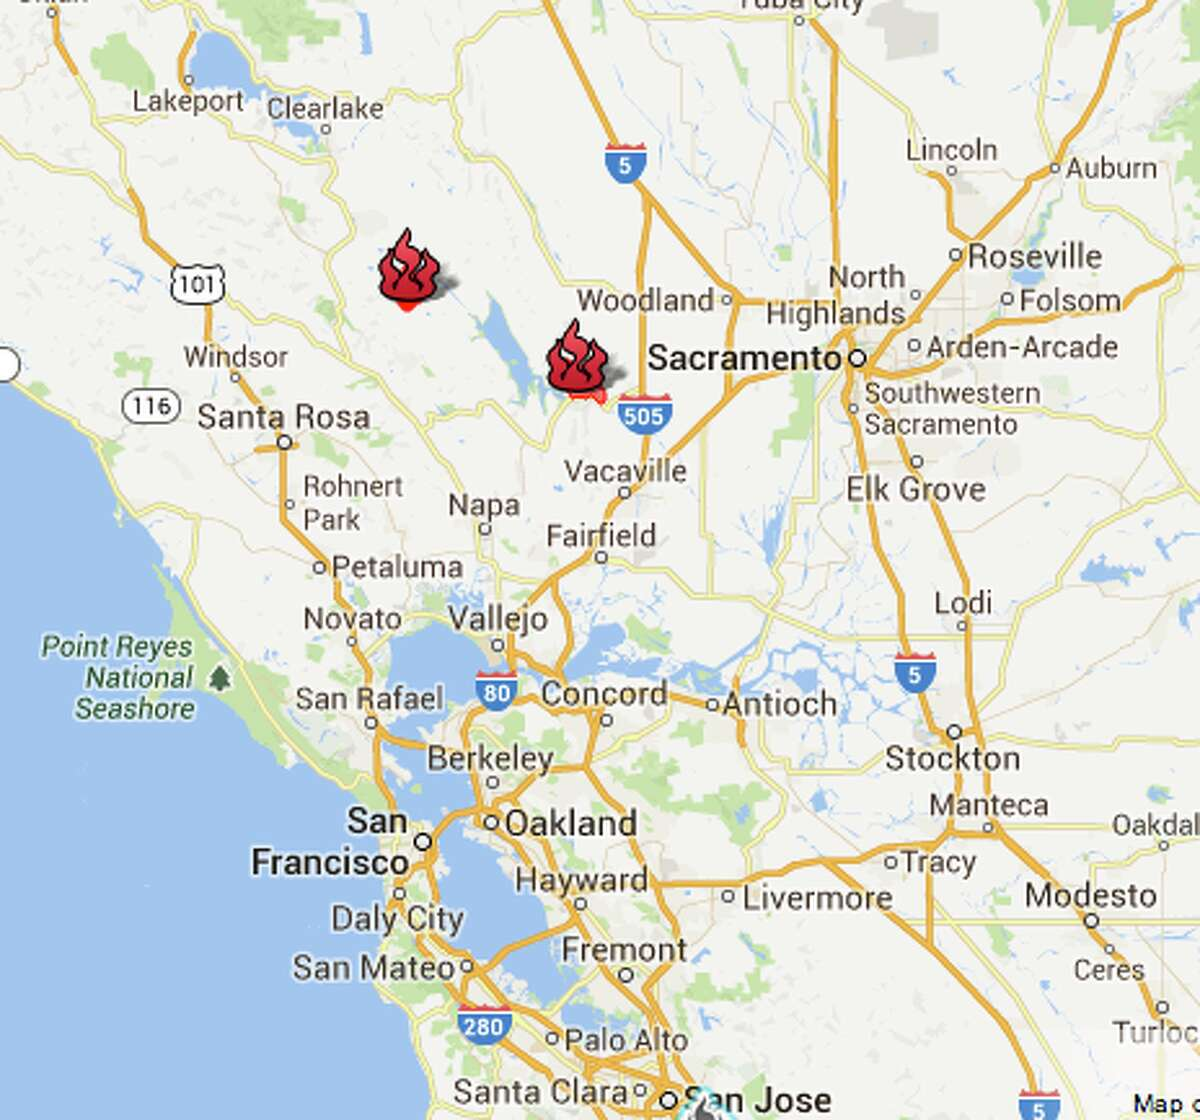 This screenshot of the CAL FIRE California fire map (click through the slideshow to see the interactive map) show the Butts Fire (at left) and the Monticello Fire. As of 7 a.m. on Sunday, July 6, 2014, the Butts Fire, northwest of Lake Berryessa, was at 4,300 acres and 80 percent contained. The Monticello Fire, at the southeast shore of Lake Berryessa, had covered more than 7,000 acres and was 30 percent contained.